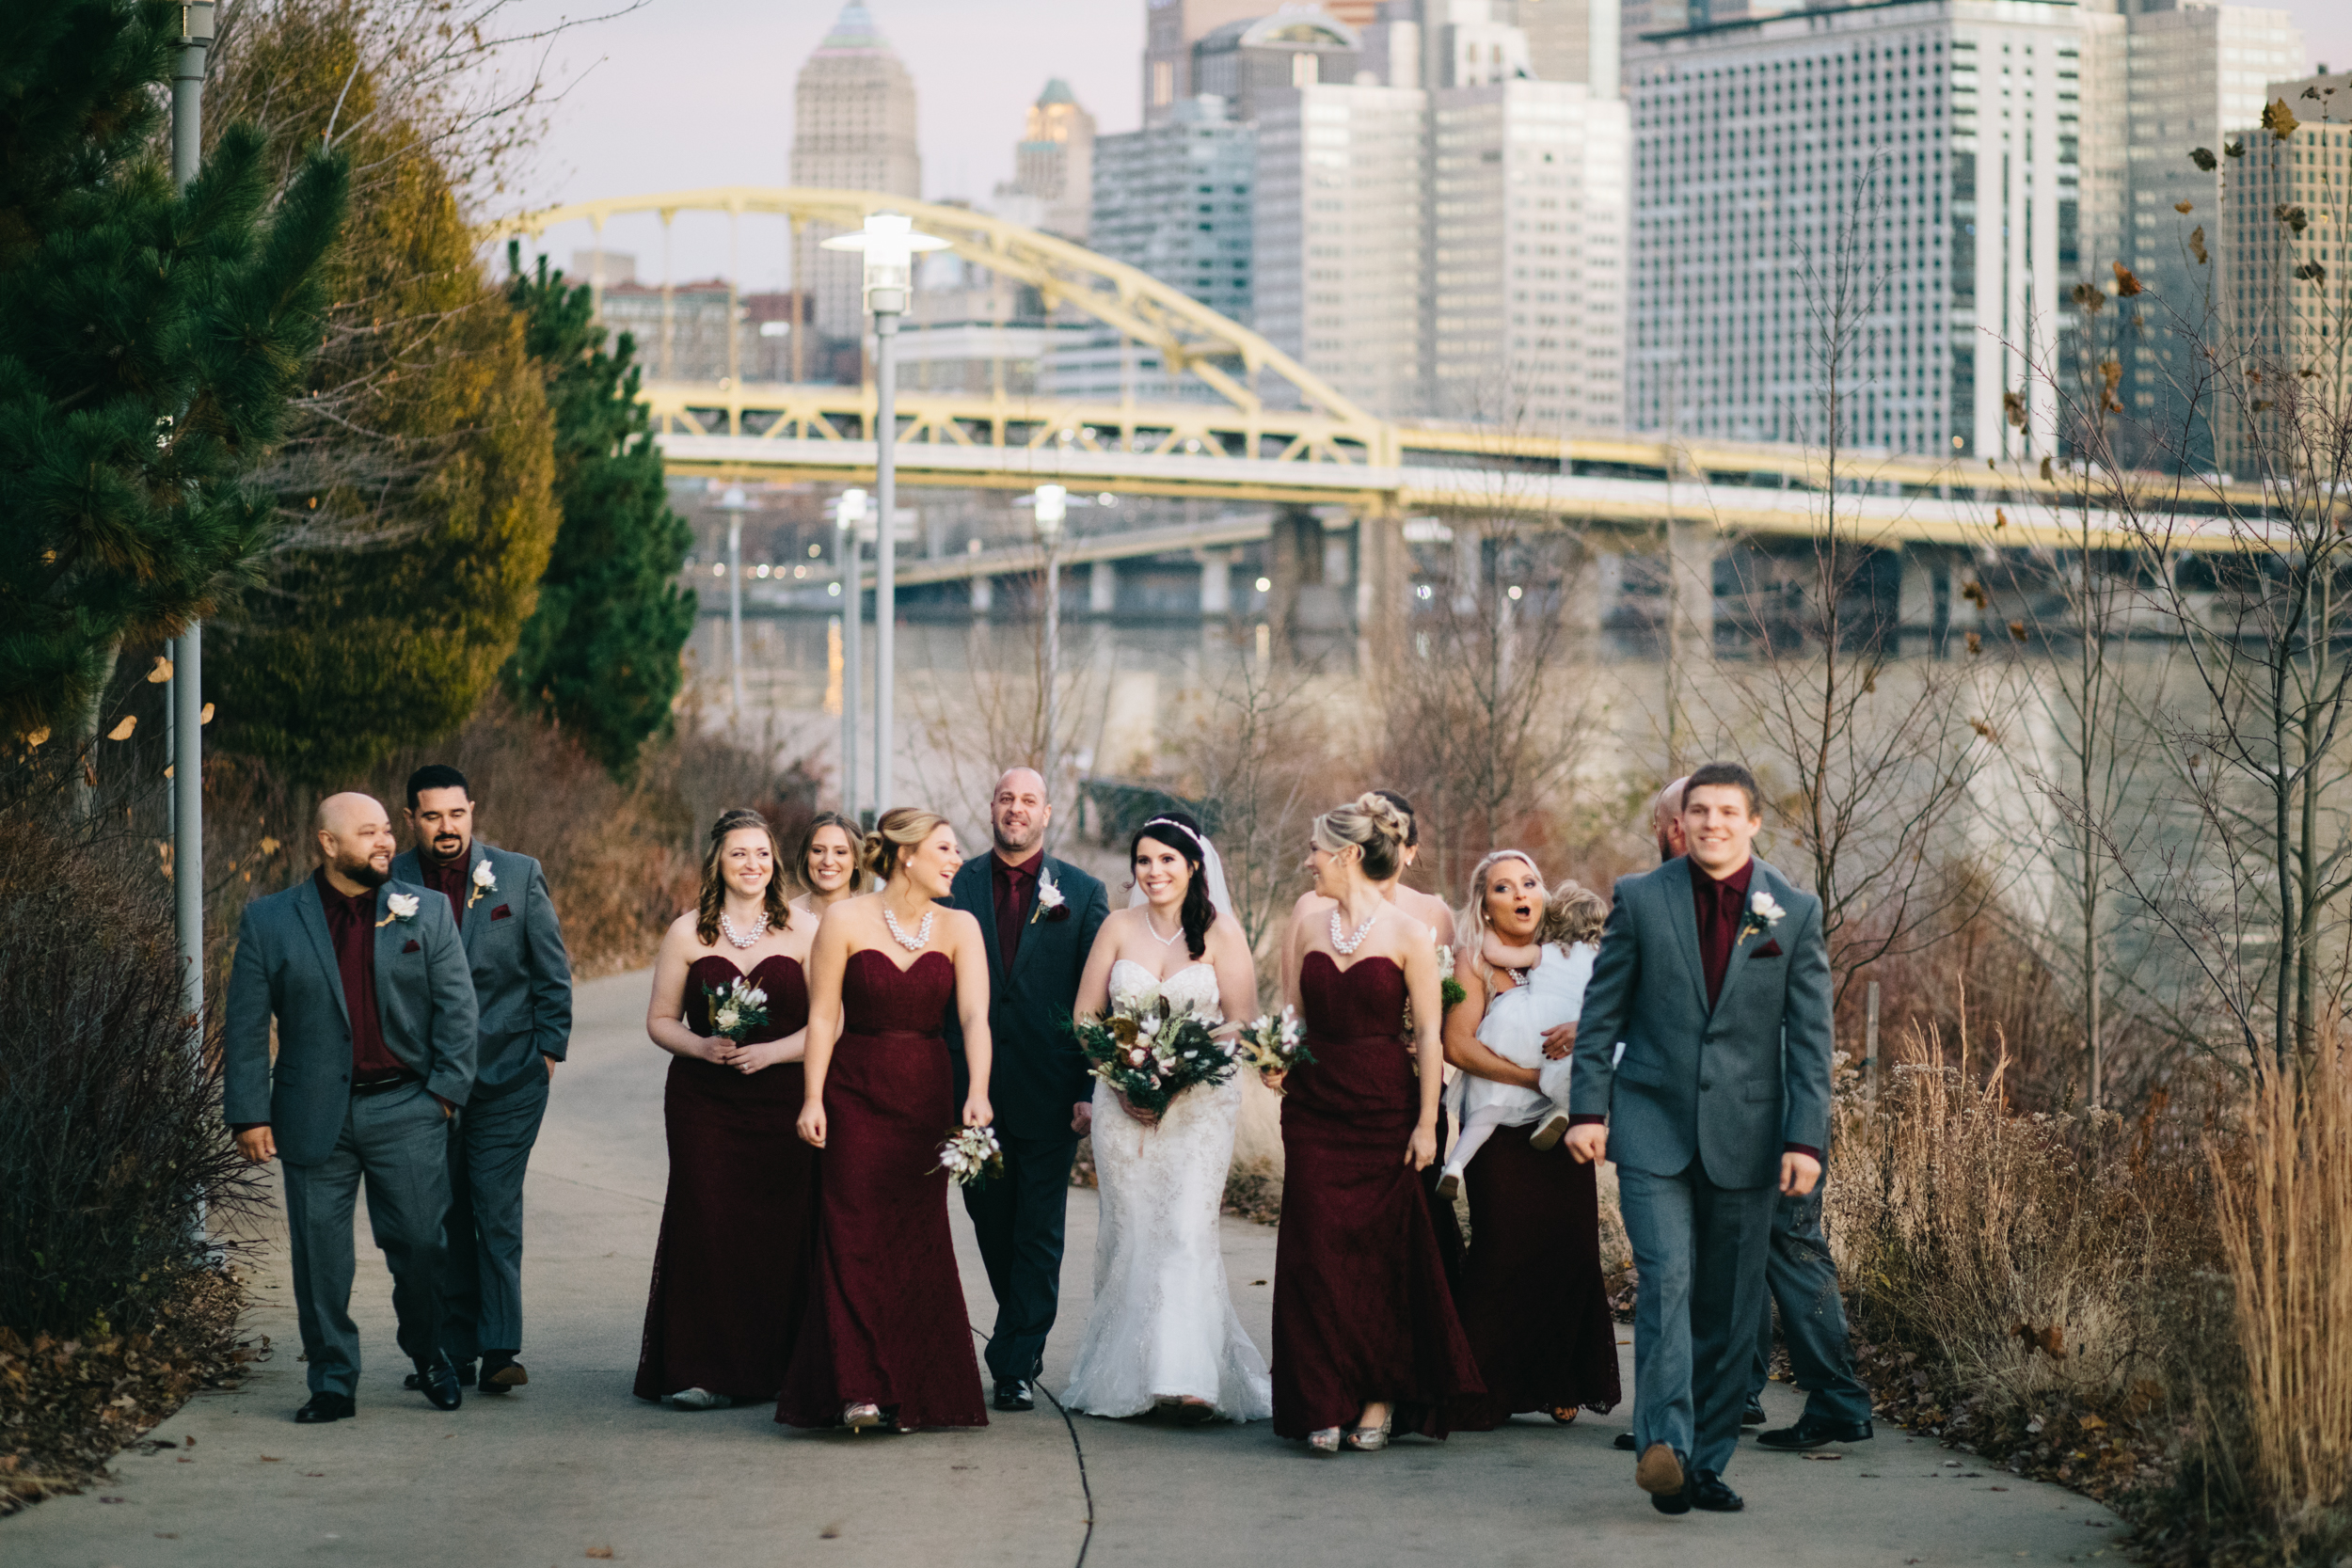 Full bridal party walking and smiling as they walk along the river beside Heinz Field with the yellow bridges and city in the background.